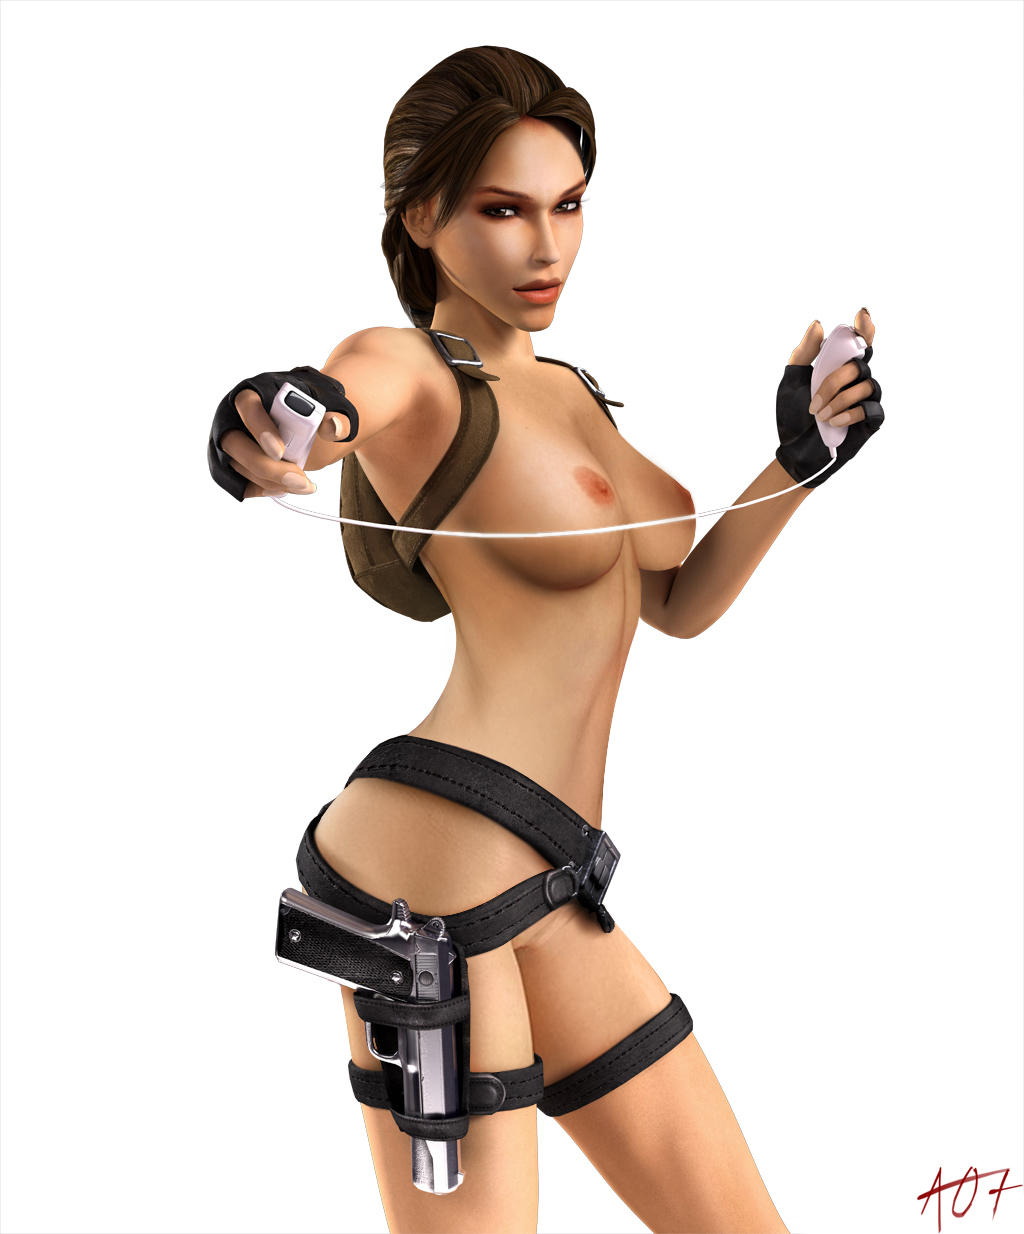 Tomb raider nude game hentai exposed gallery